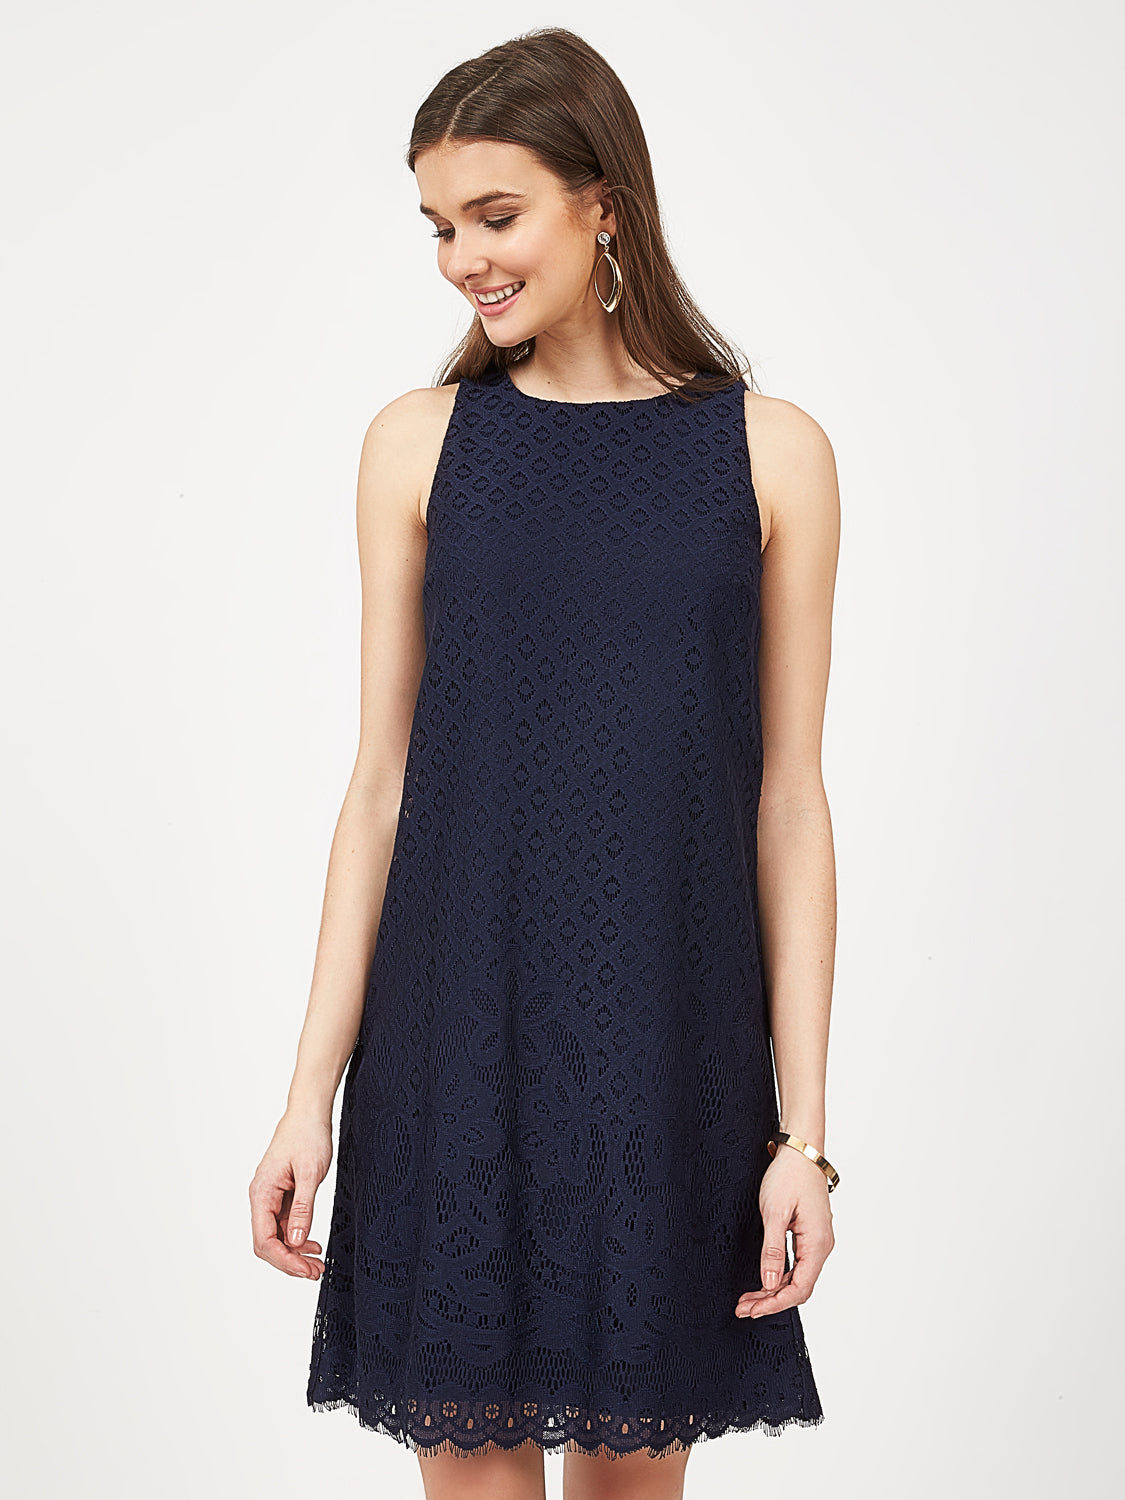 Sleeveless Scalloped Hem Dress